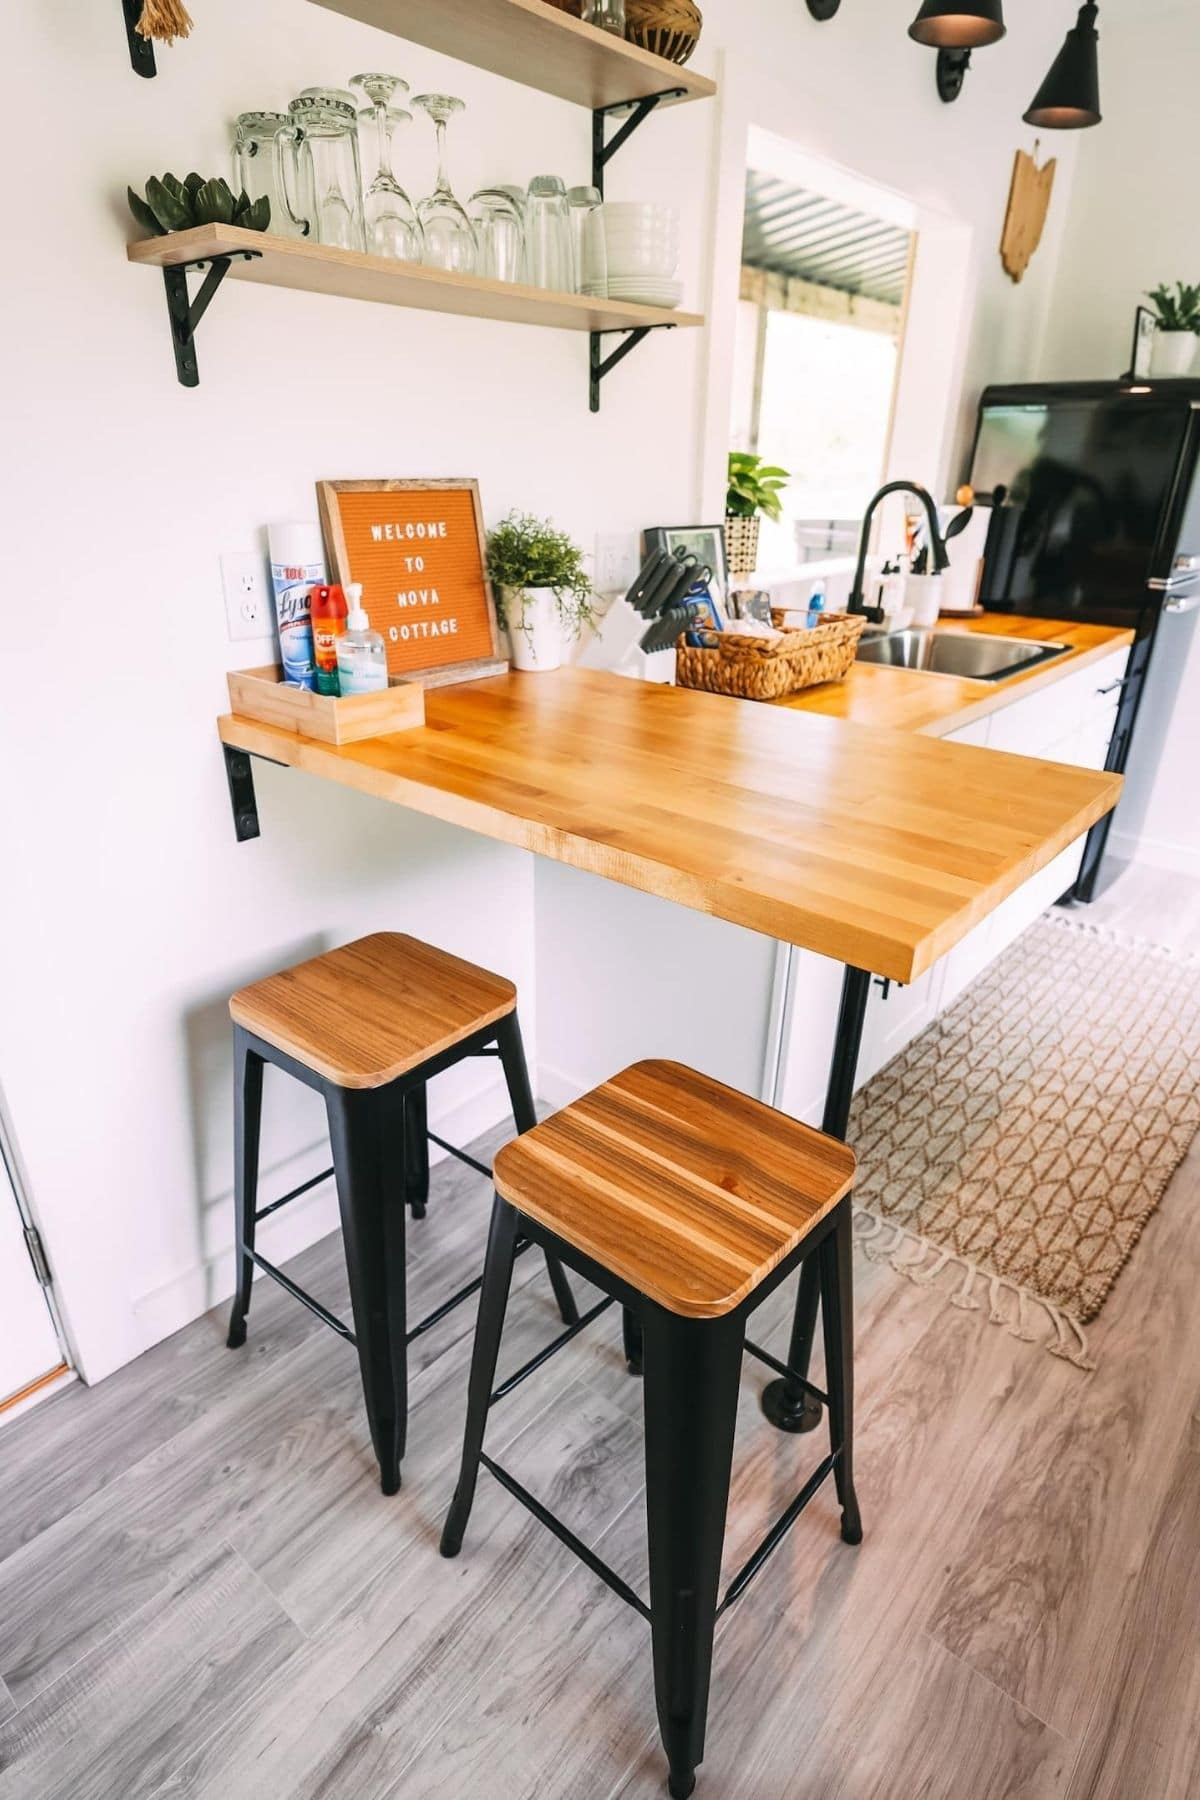 Butcher block bar at end of kitchen counter with wood and black stools